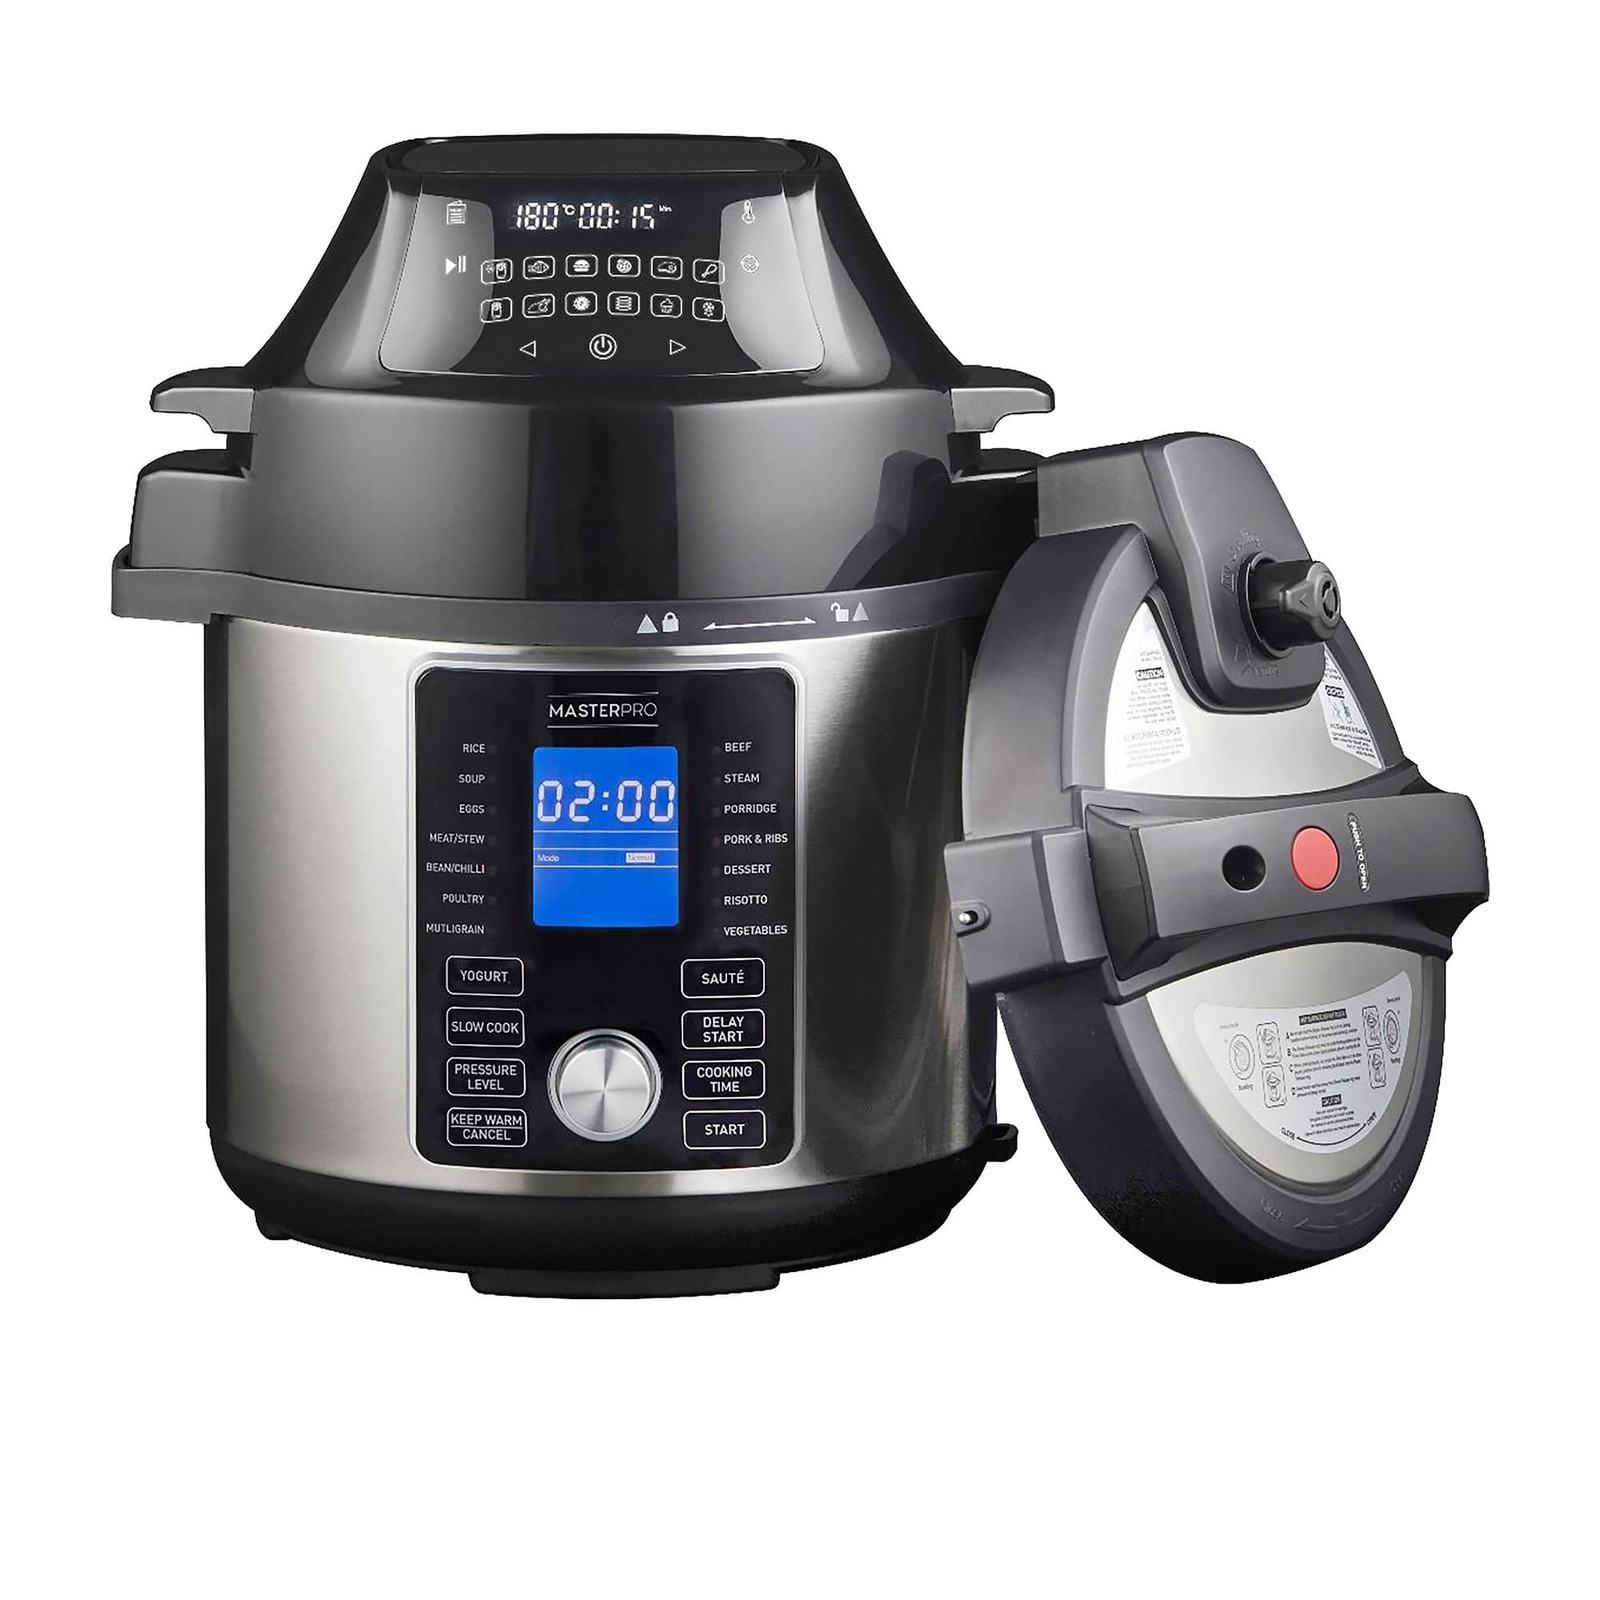 MasterPro Ultimate All In One Multi Cooker & Air Fryer 5L